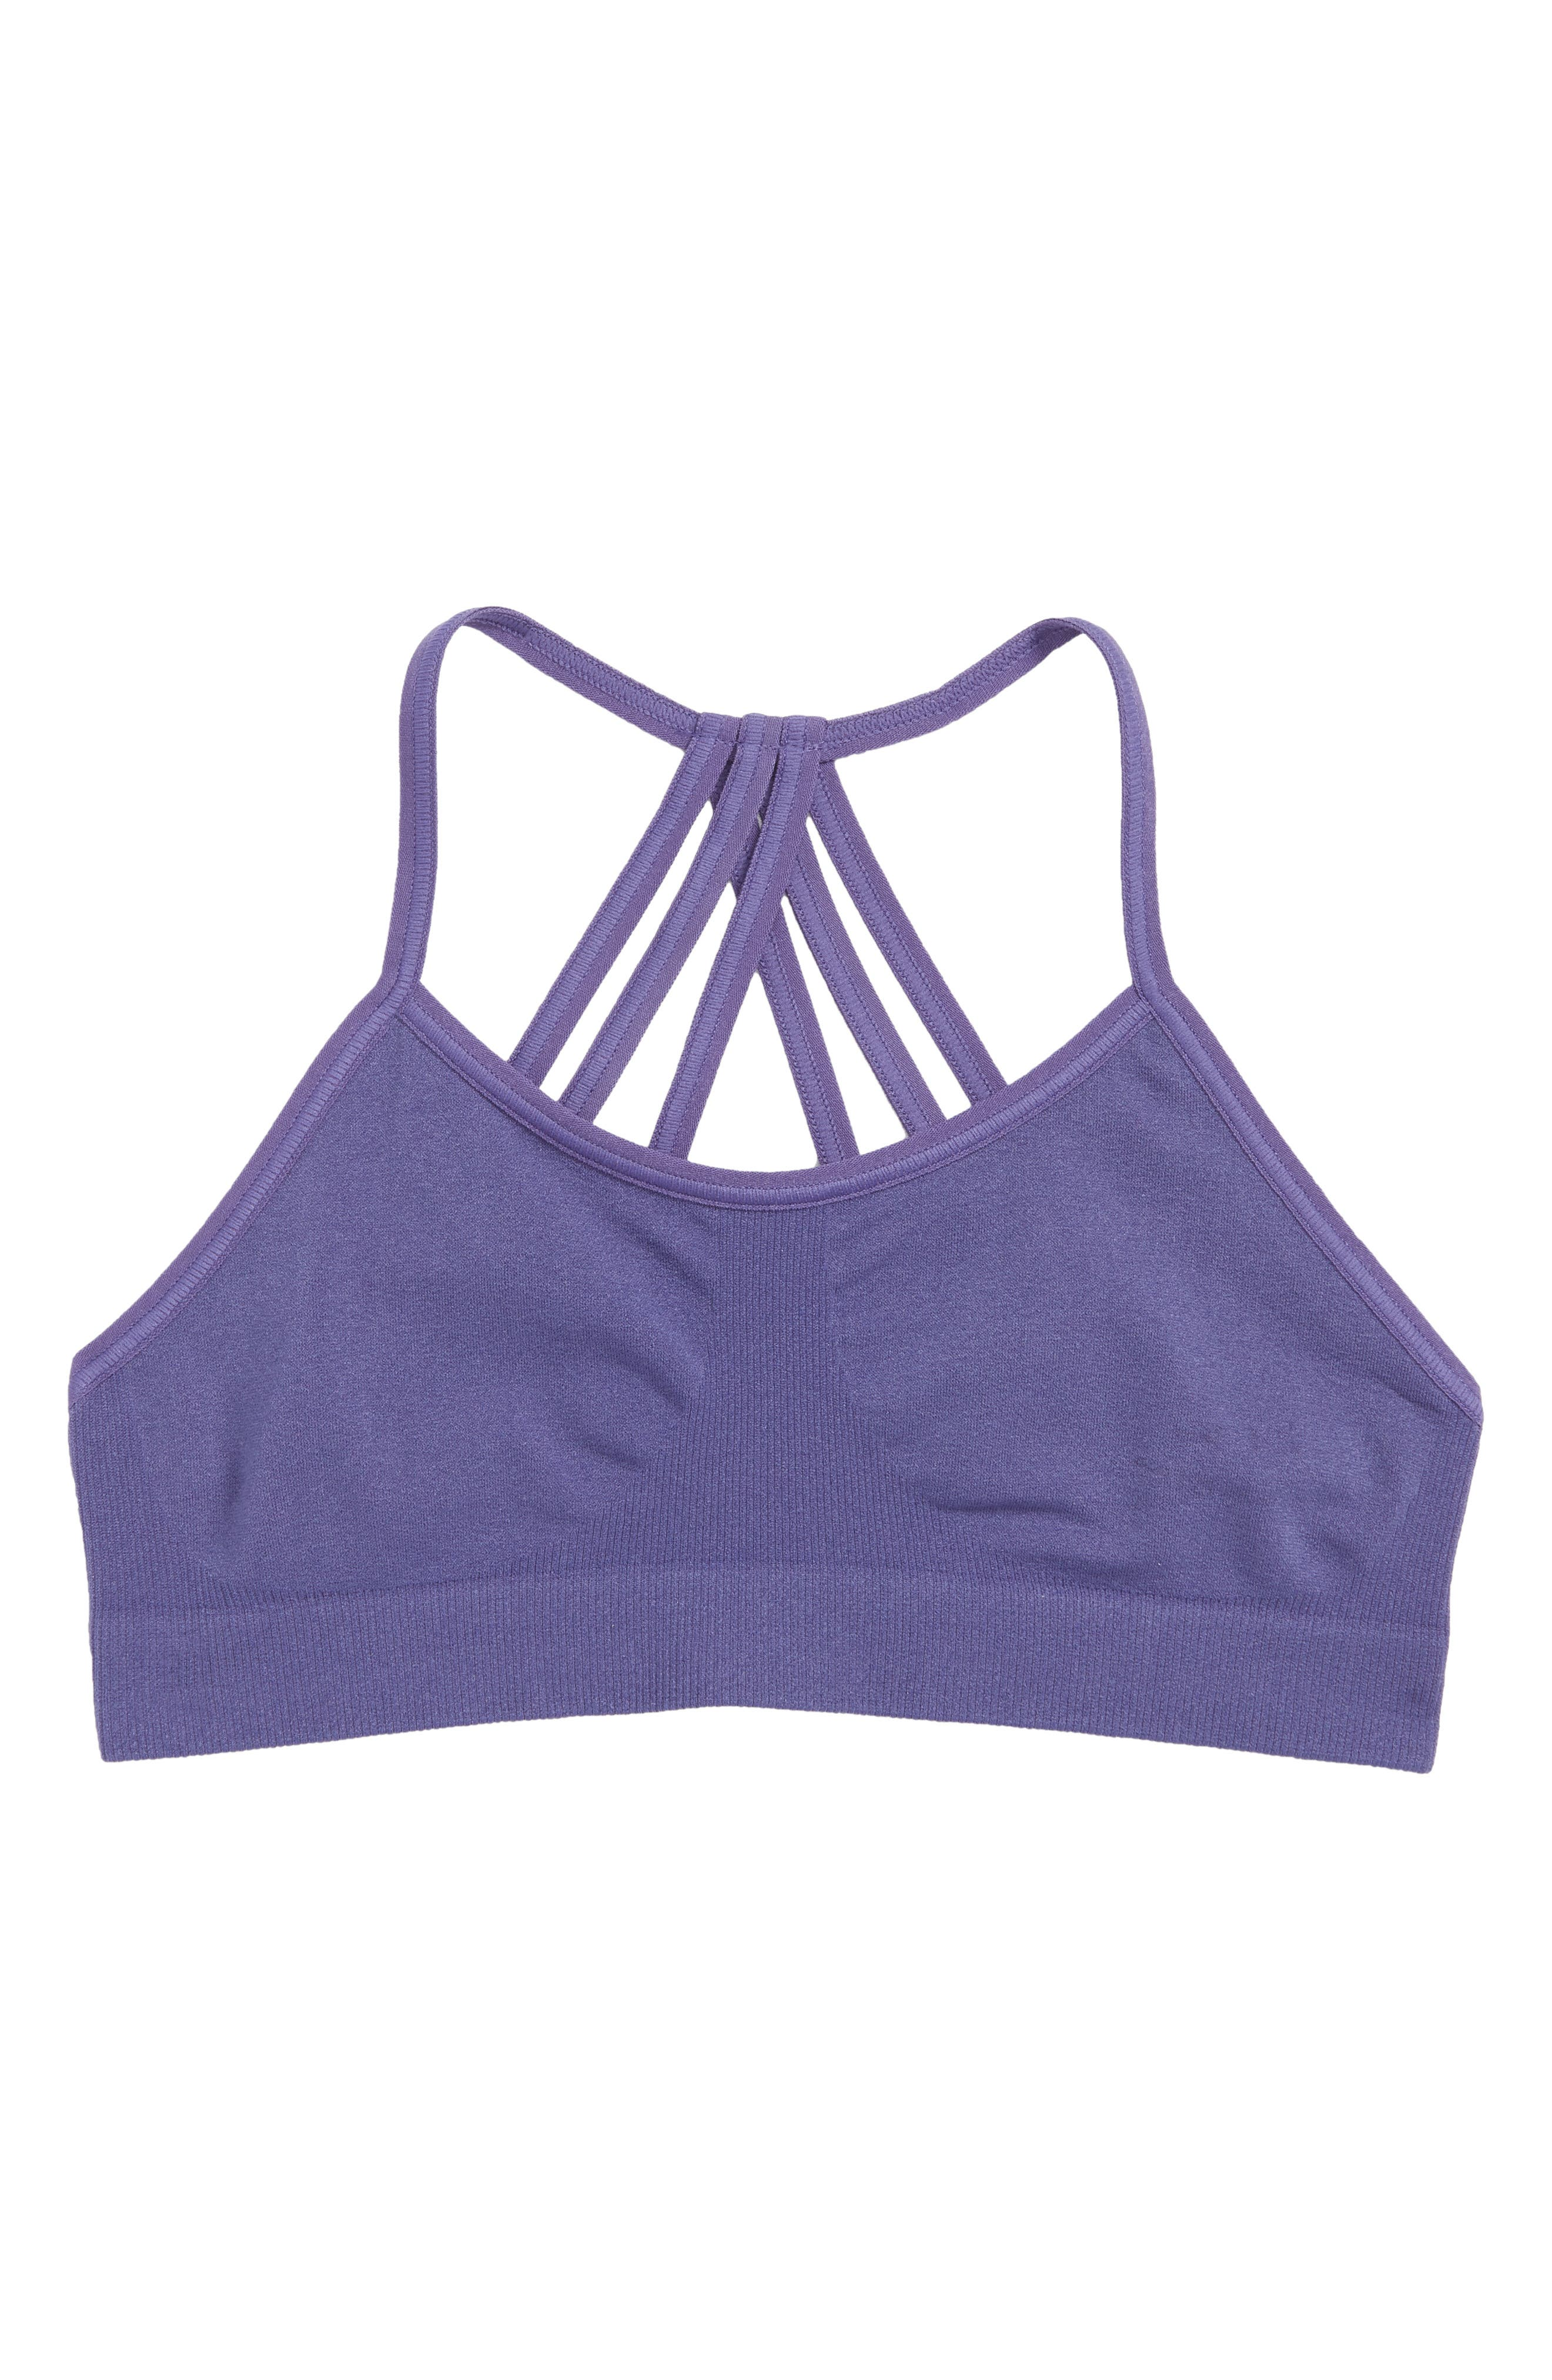 Strappy Back Bralette,                             Main thumbnail 1, color,                             410